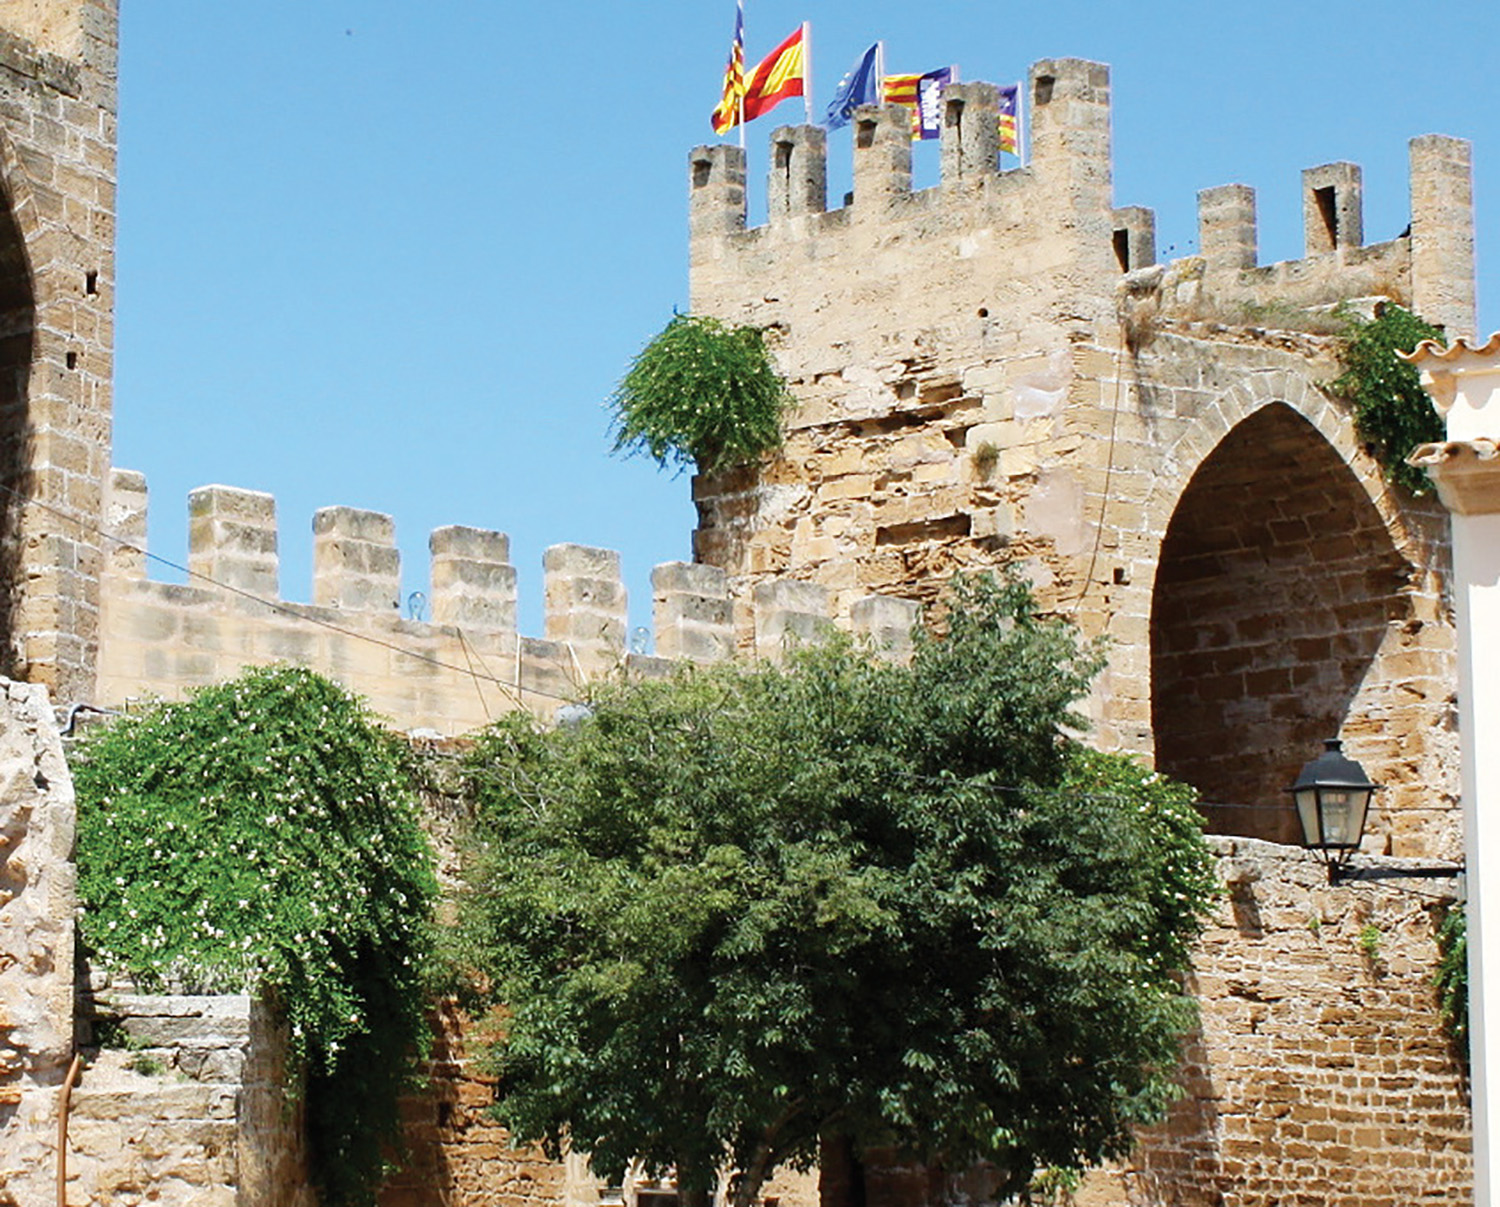 Caper plants growing on the castle walls in the Balearic Island of Spain Photo by Dale Hill-Power